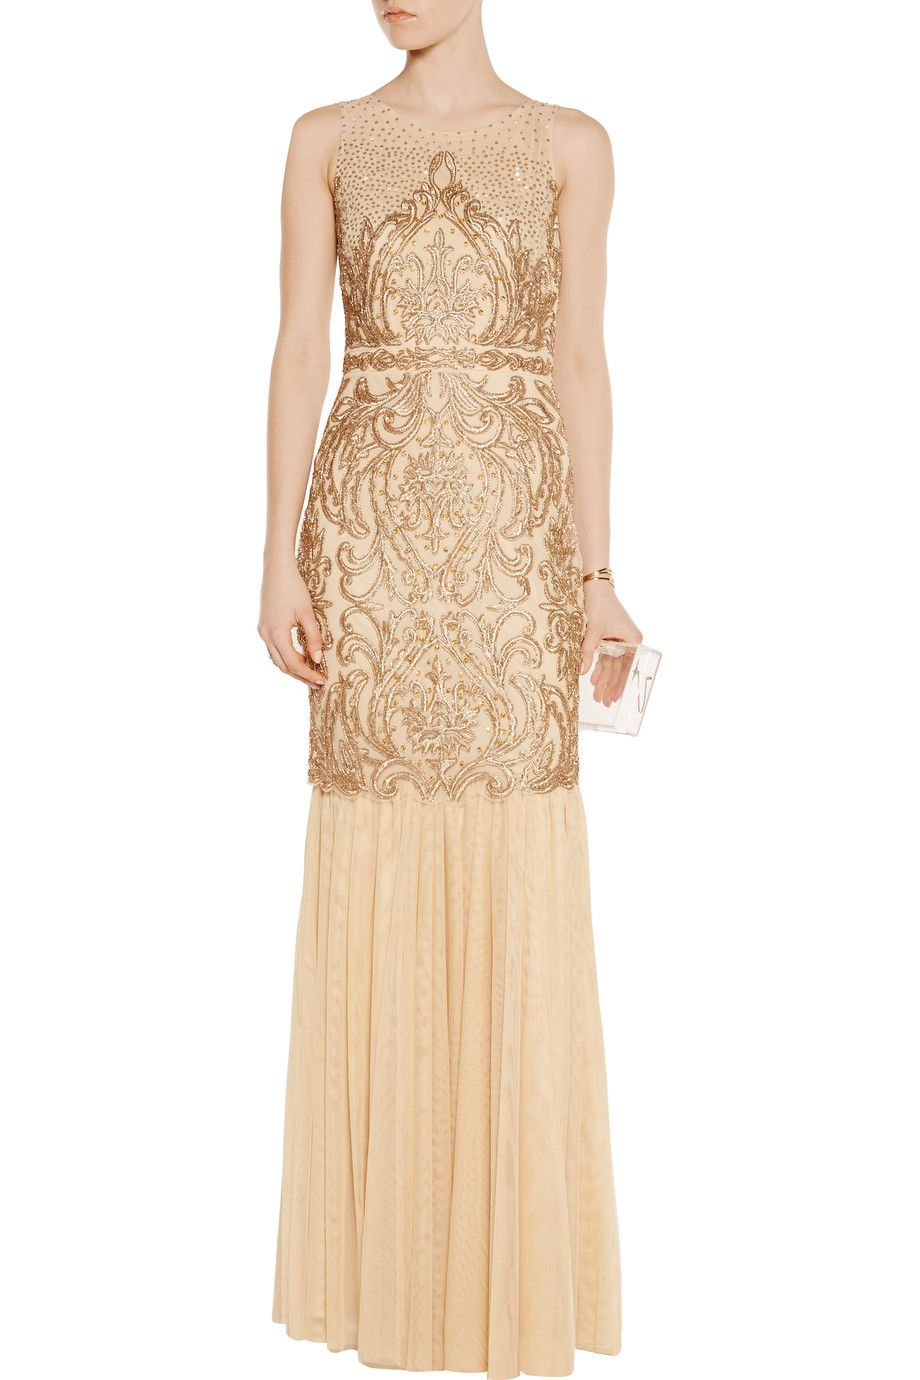 Embellished tulle gown   Badgley Mischka   US   THE OUTNET   W L A B ...